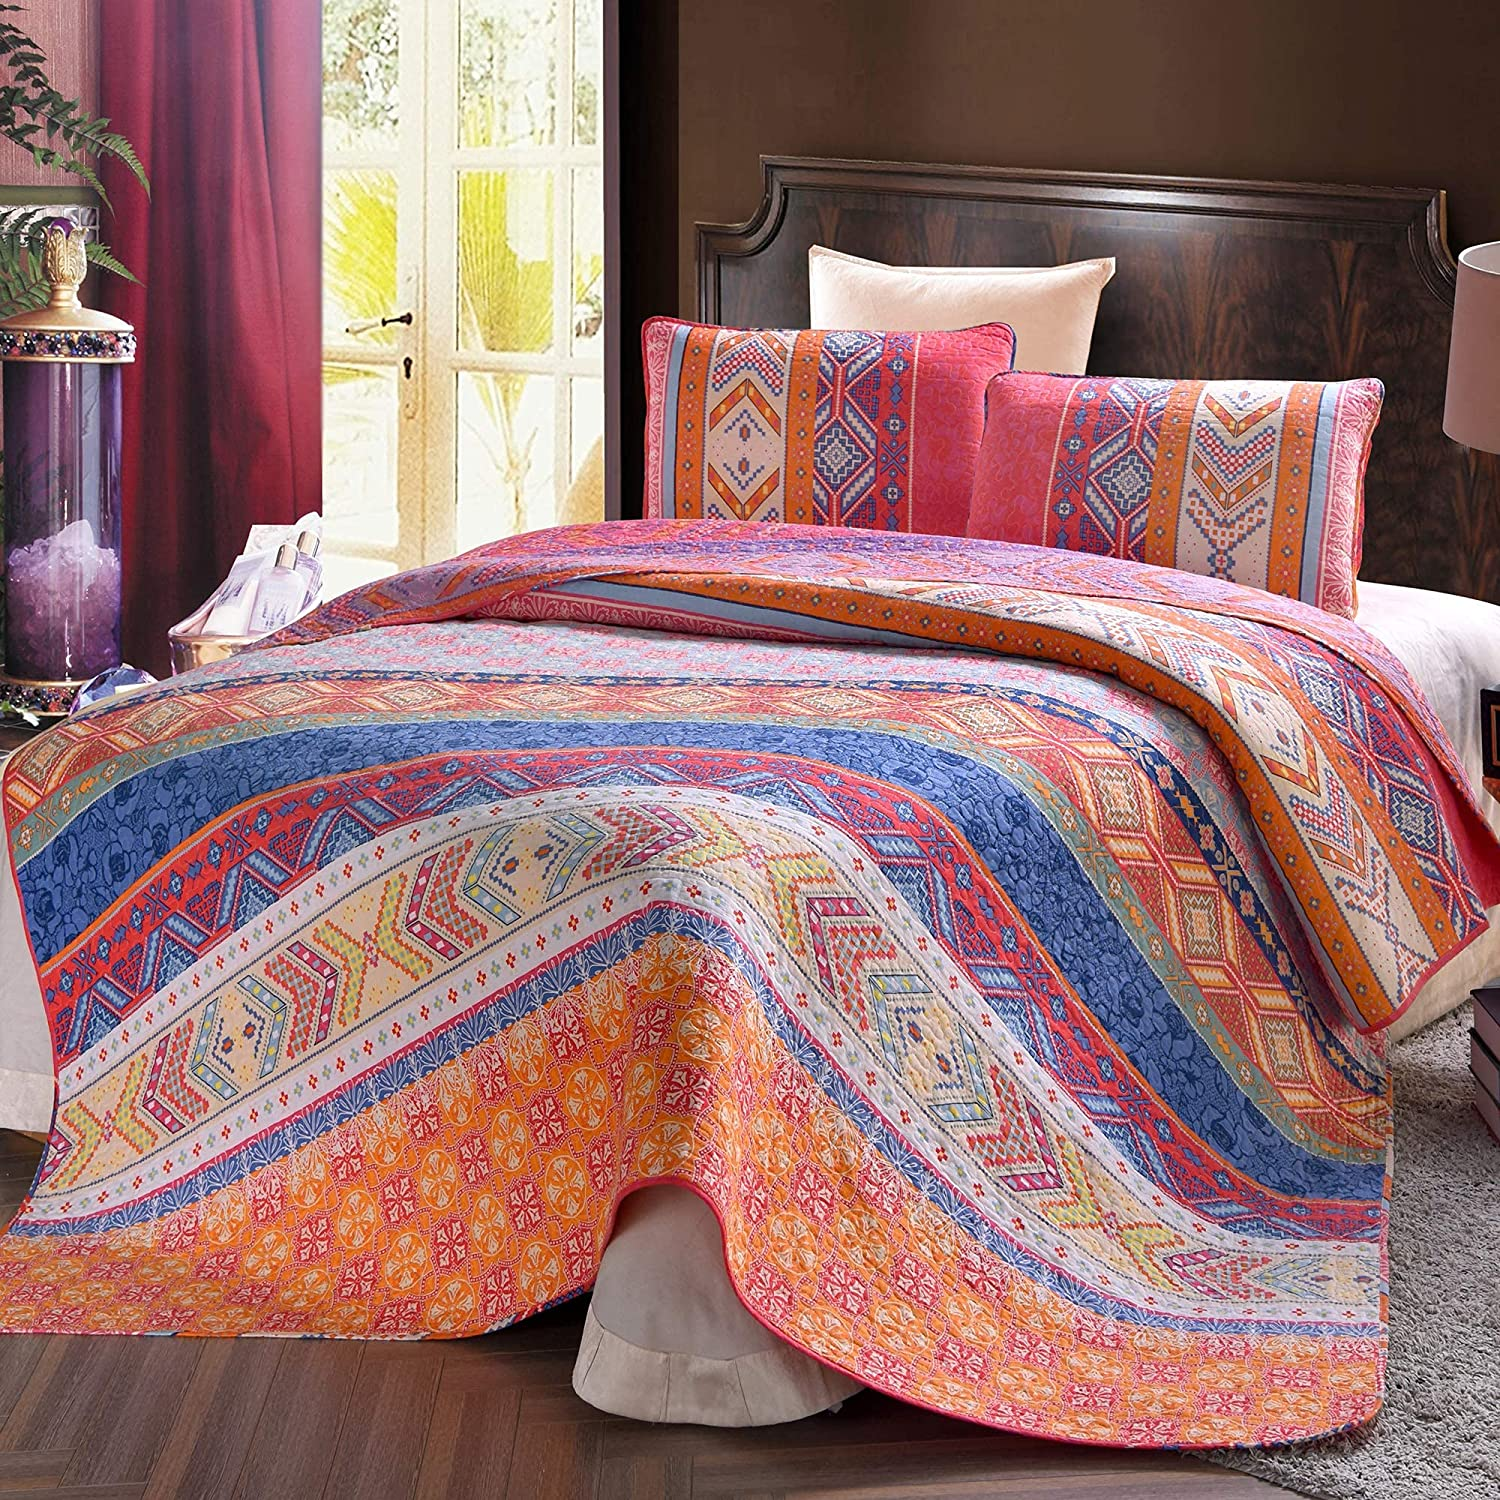 Exclusivo Mezcla 100% Cotton 3-Piece Multicolored Boho Full/ Queen Size Quilt Set as Bedspread/ Coverlet/ Bed Cover- Lightweight, Reversible and Decorative